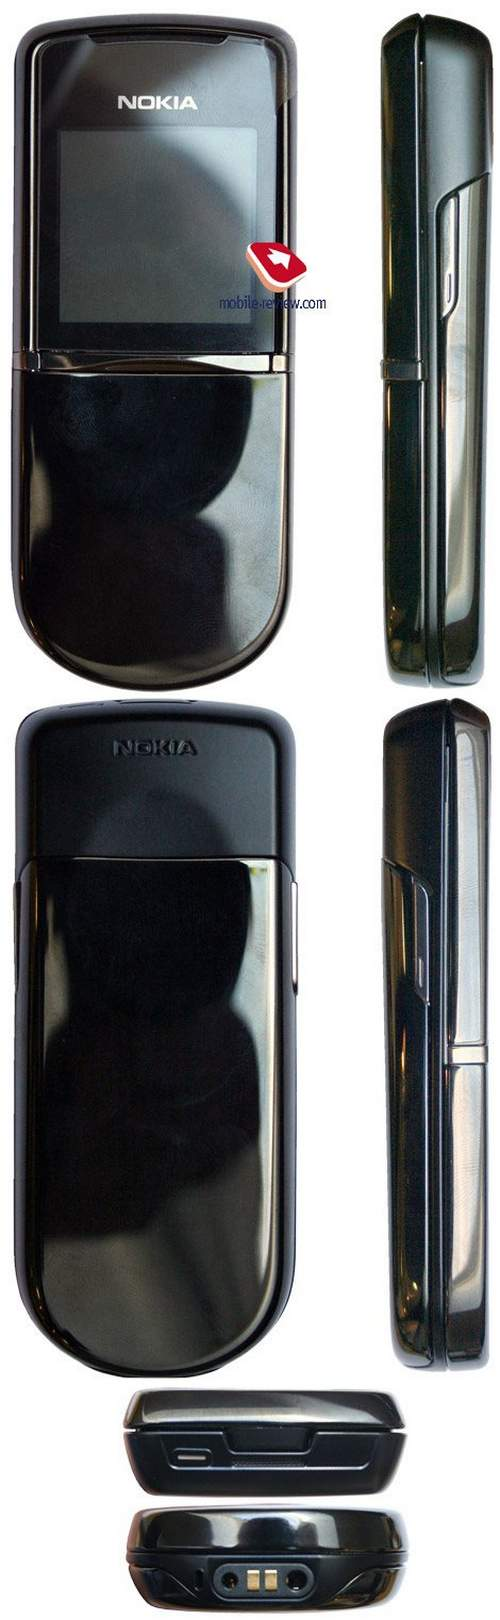 Nokia 8800 Increase Volume Dynamics